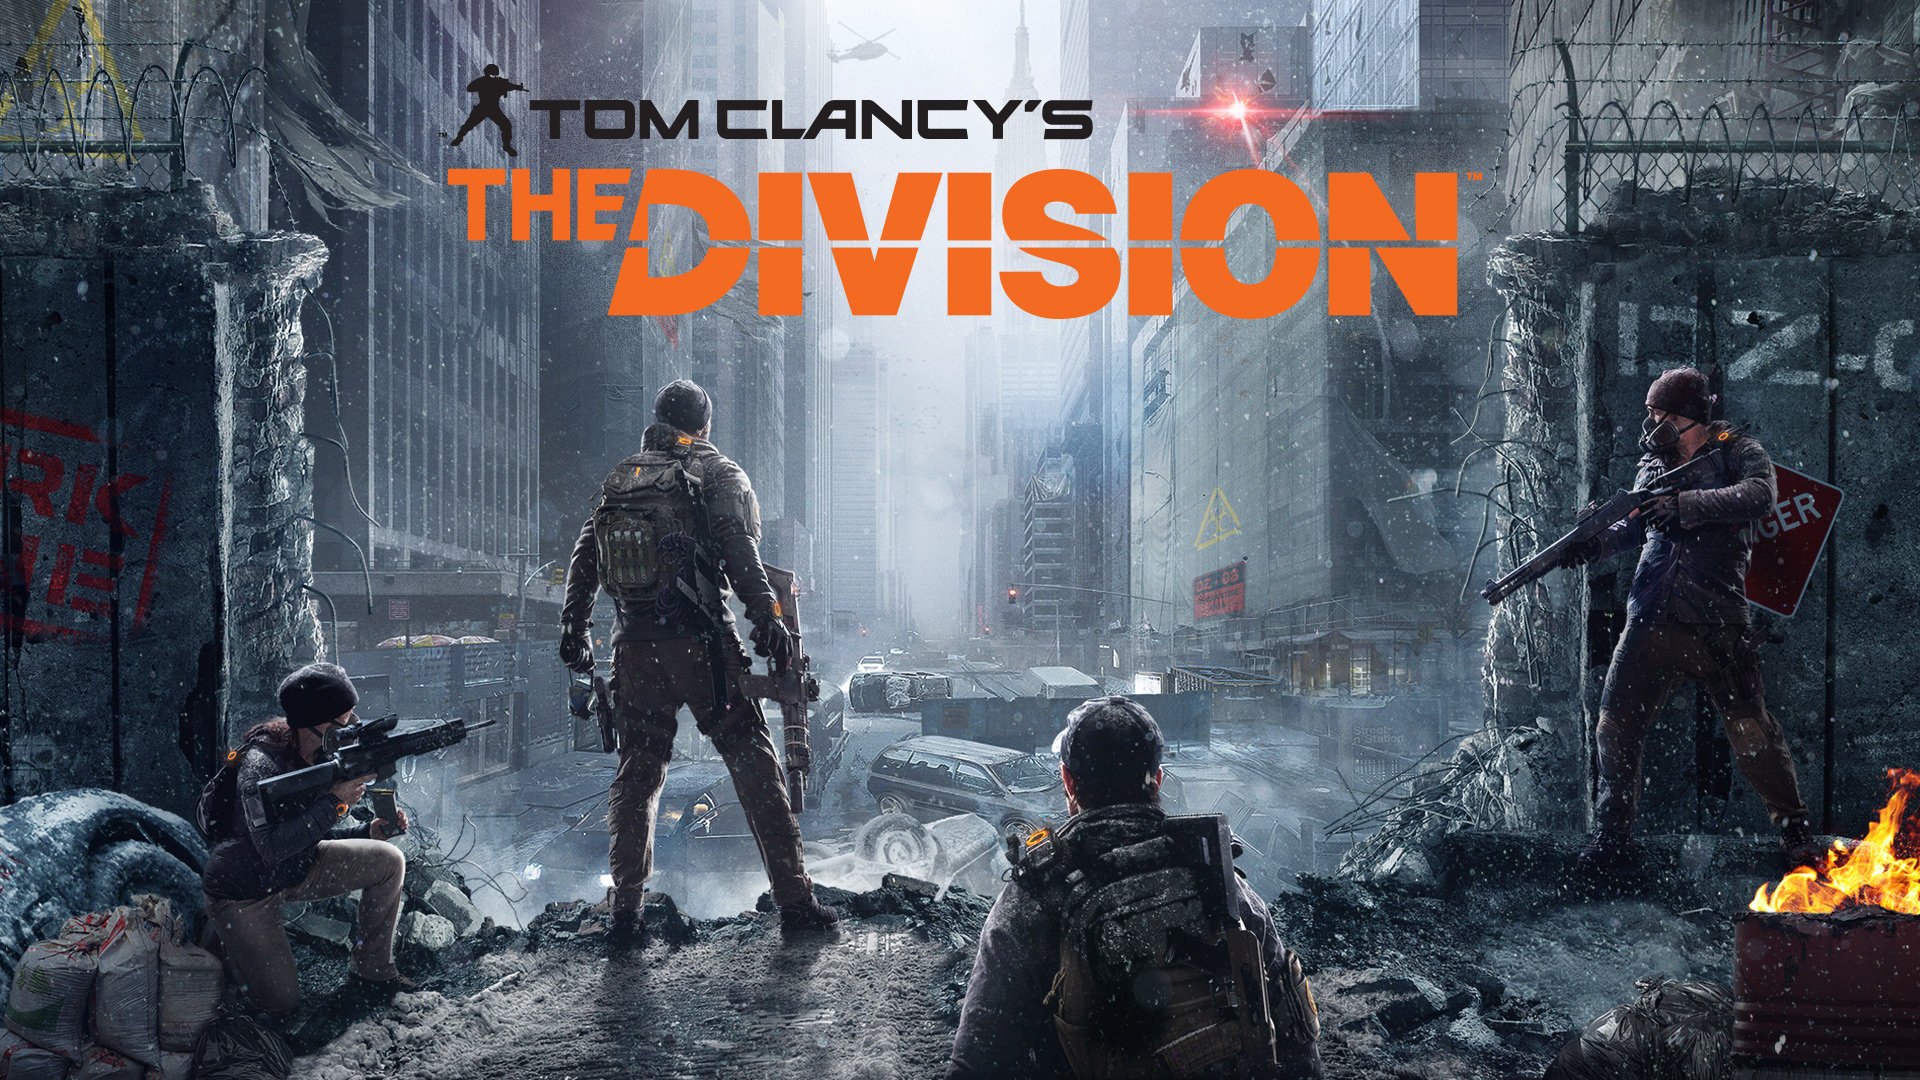 download full hd tom clancy's the division desktop wallpaper id